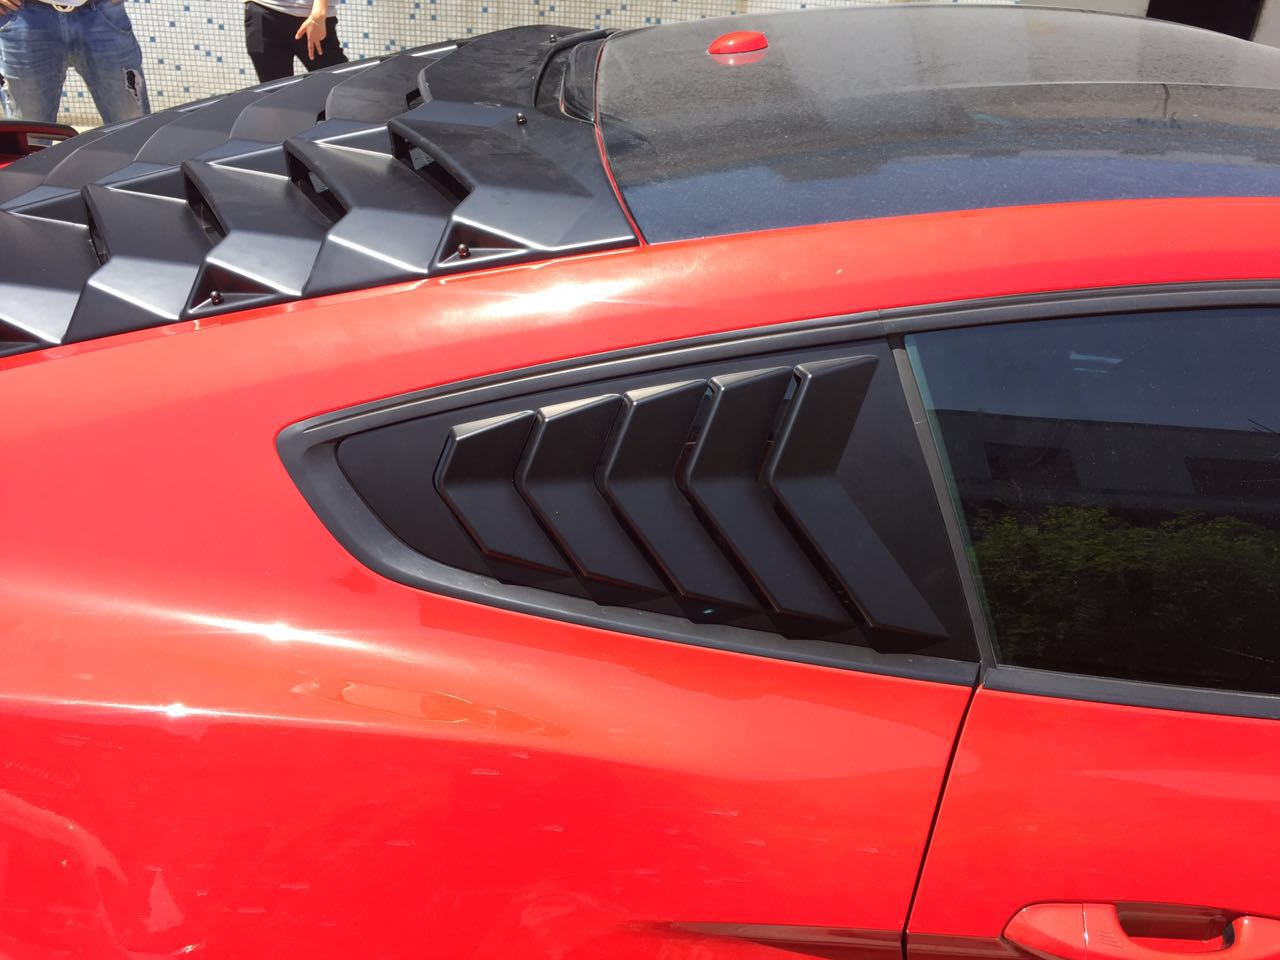 2015-18 Mustang Upper Quarter Window Louvers OPEN VENT 5 SLOT - PAIR - ABS Plastic